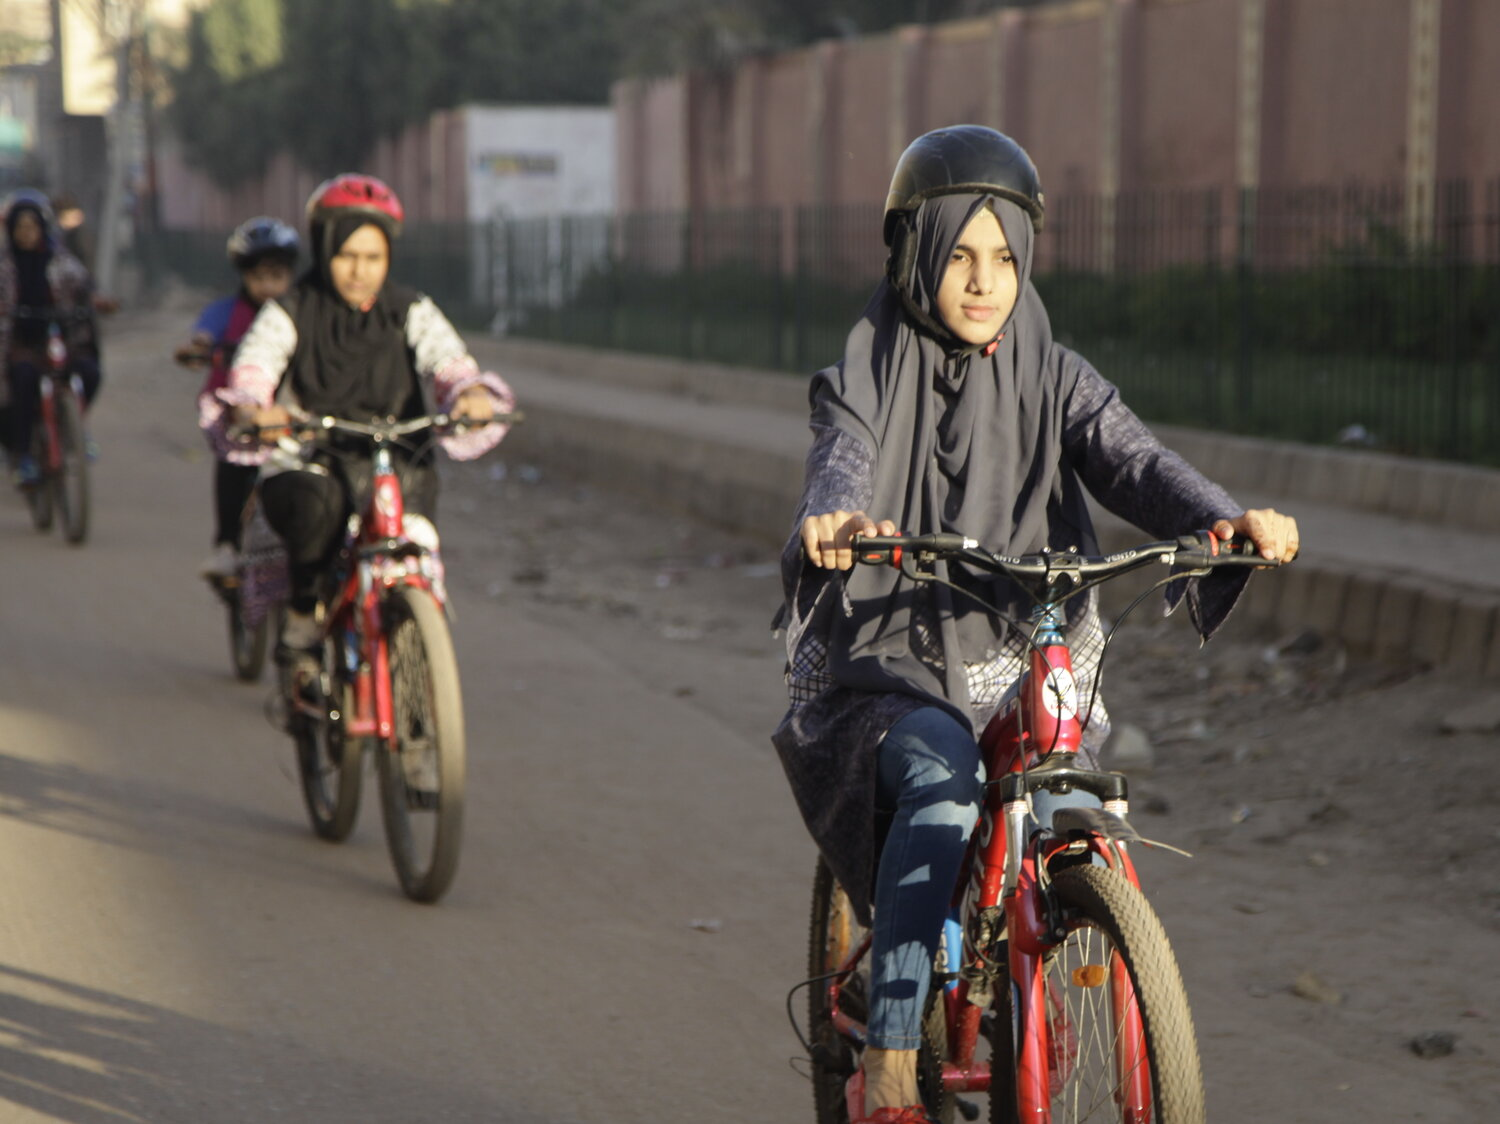 Women and bicycles in Pakistan for International Women's Day